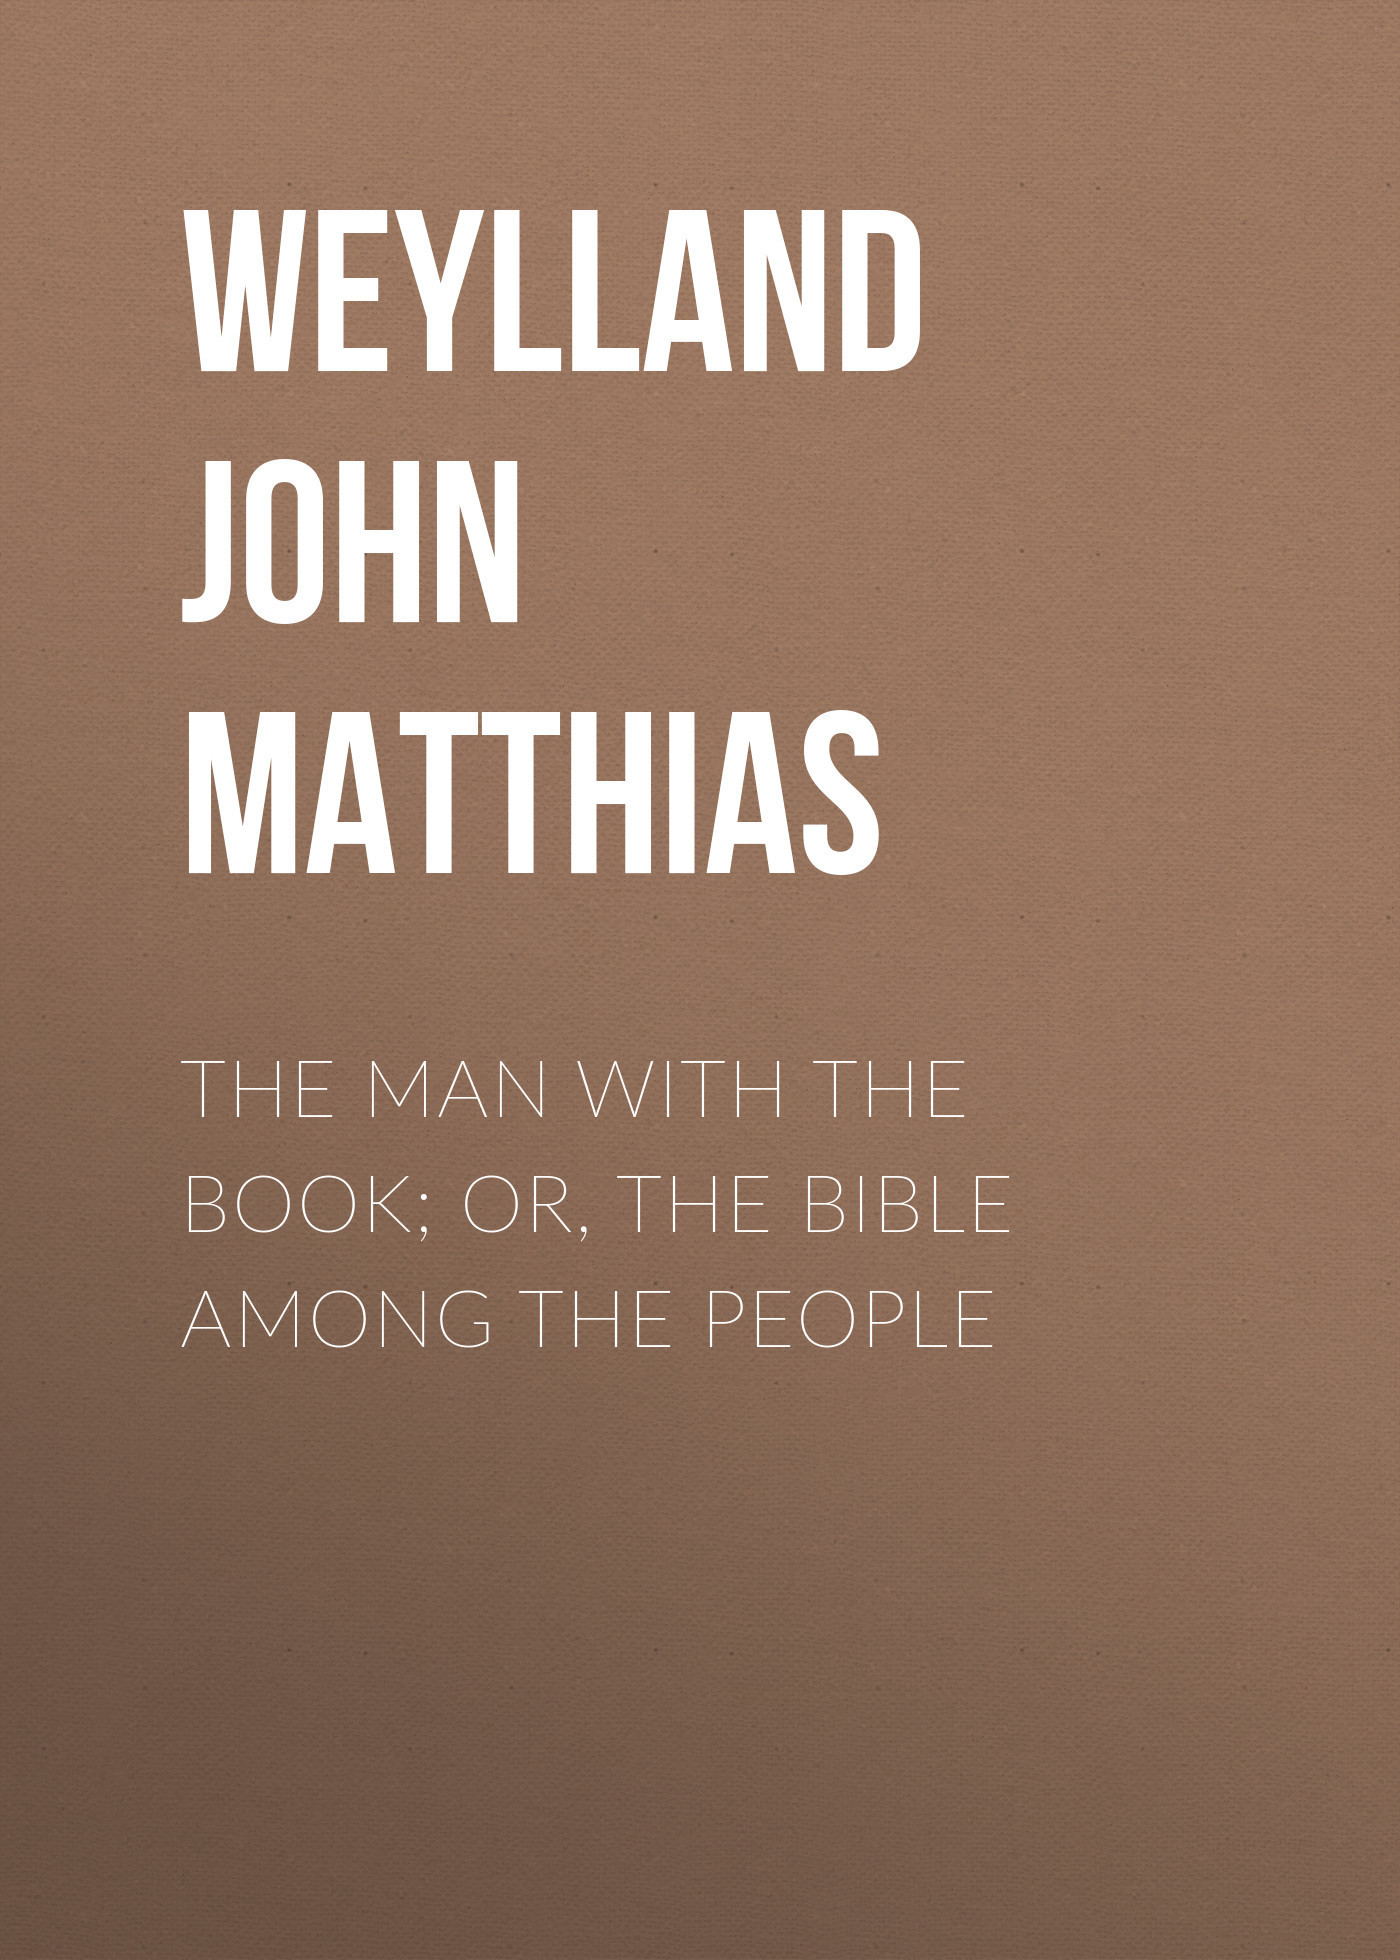 Weylland John Matthias The Man with the Book; or, The Bible Among the People cat among the pigeons